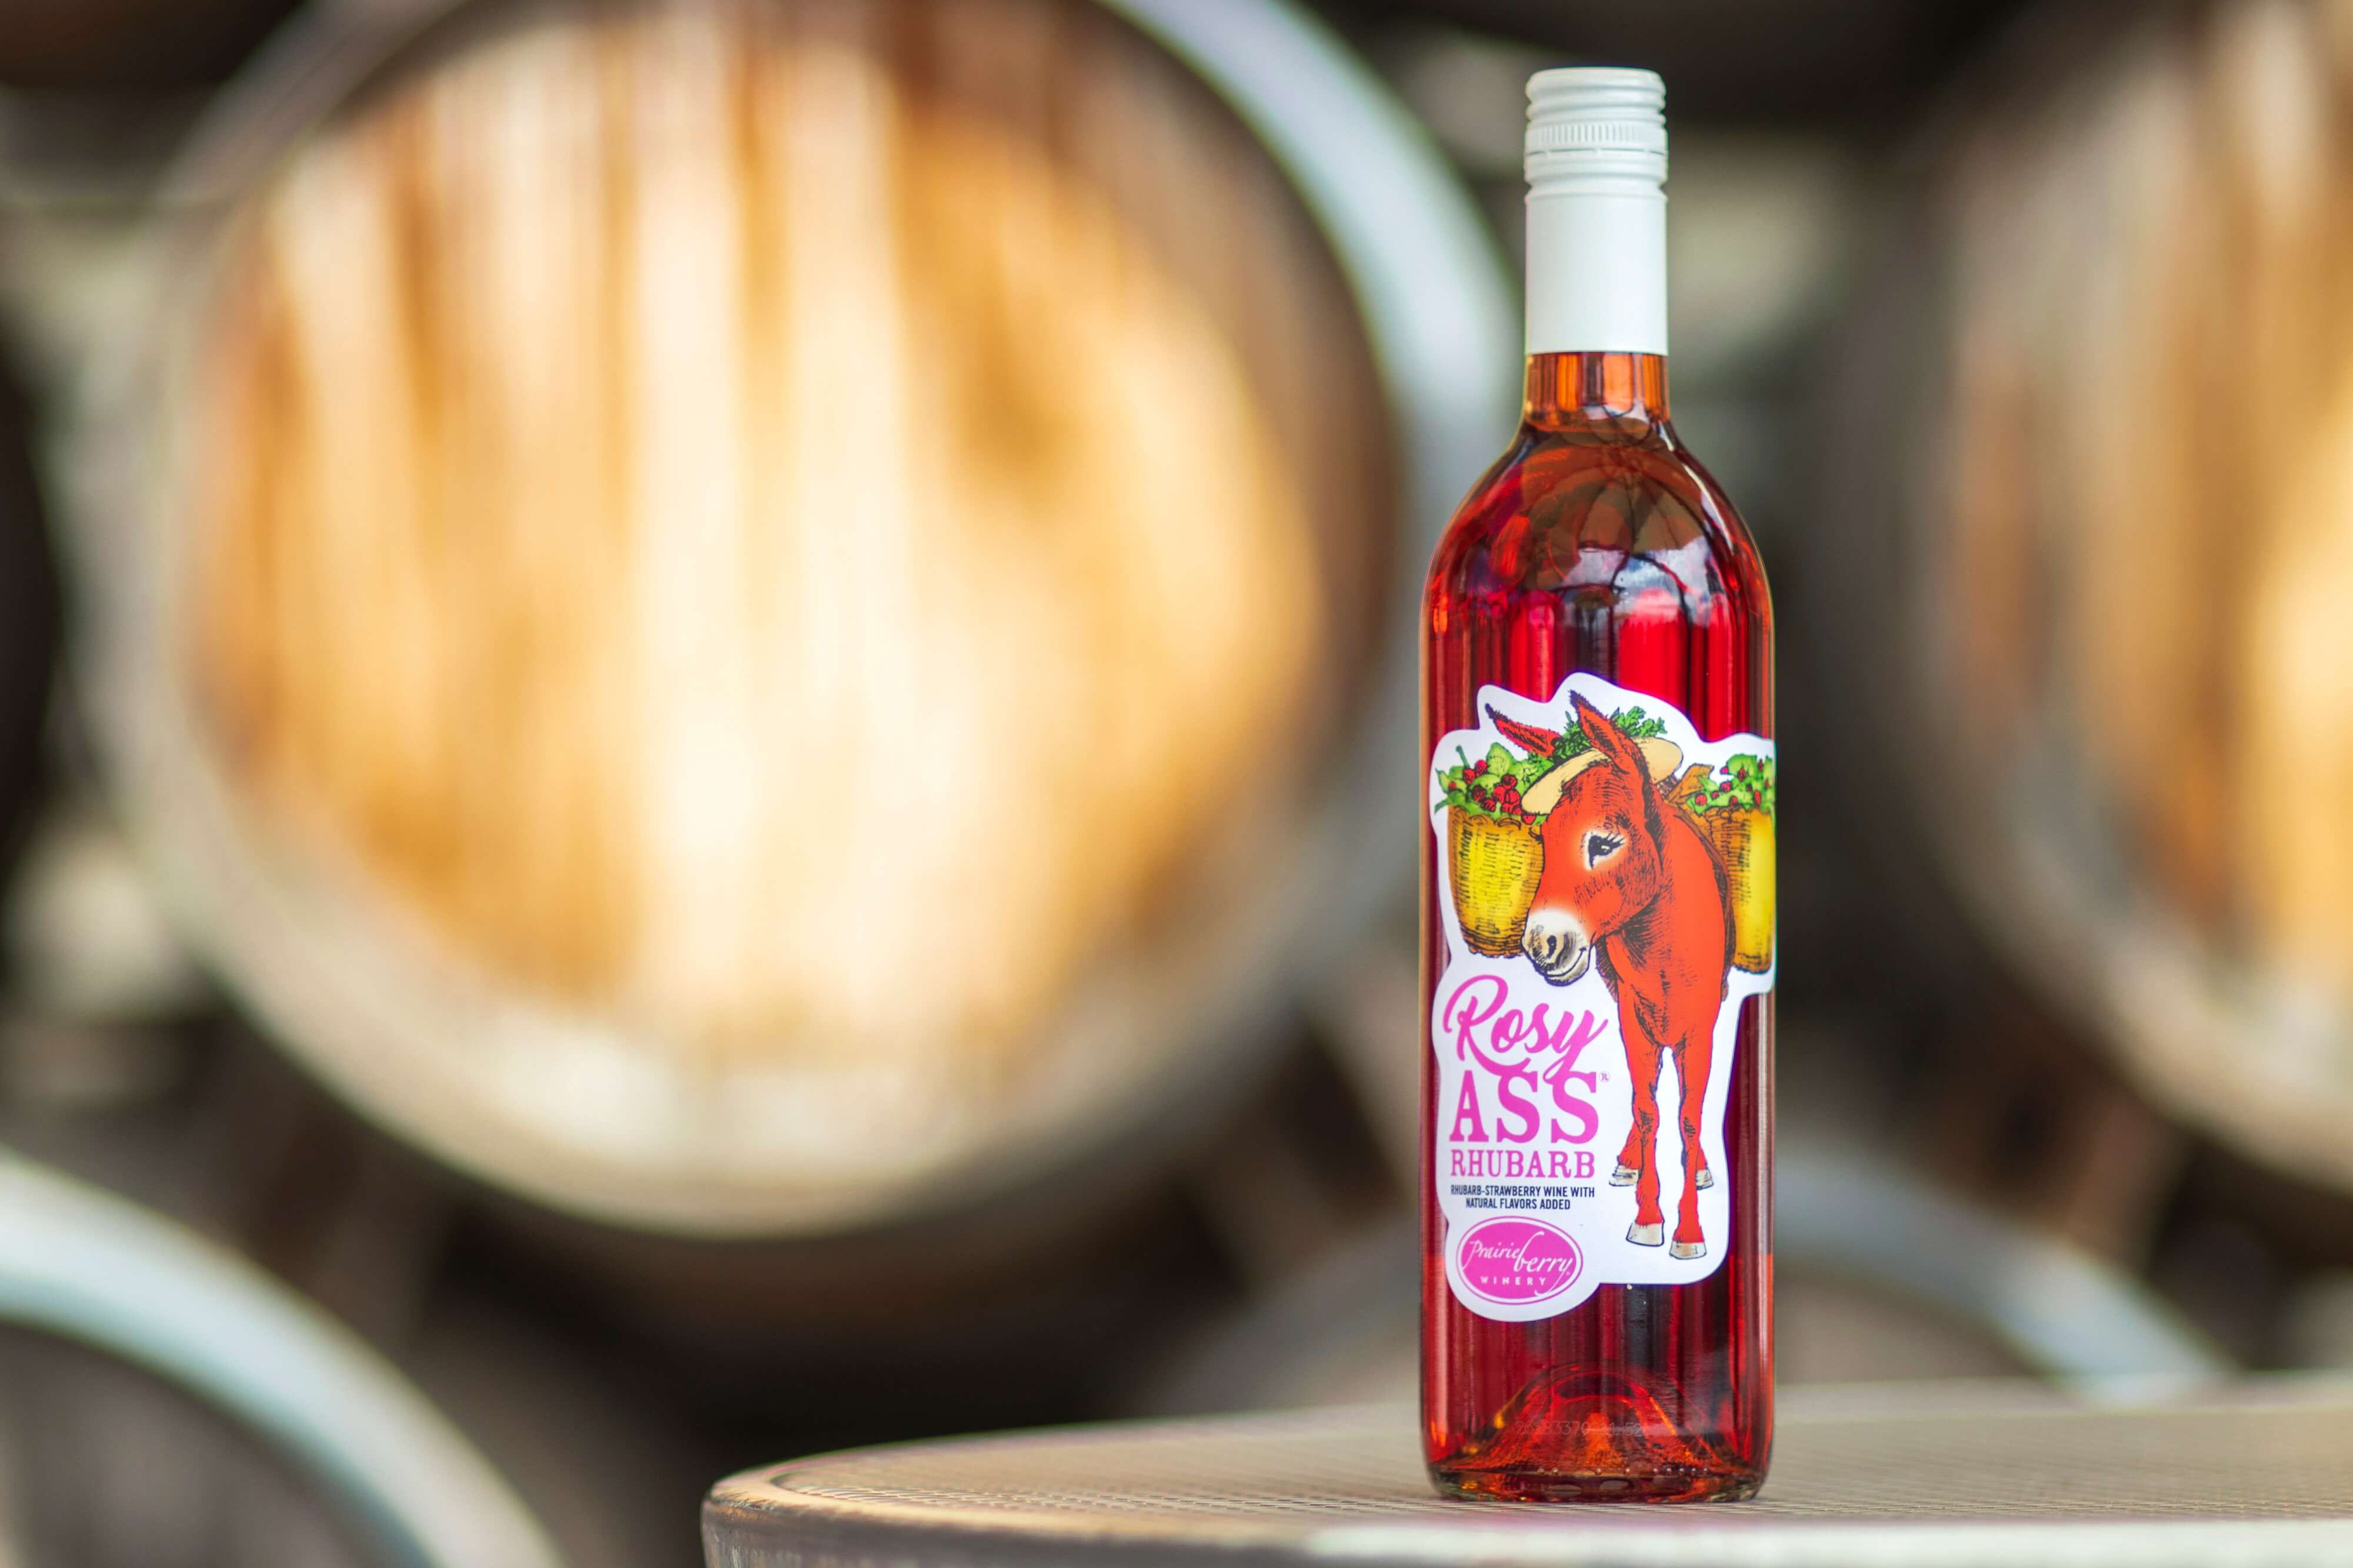 A blend of strawberry and rhubarb, Rosy Ass Rhubarb is a perfect companion to Prairie Berry Winery's popular and award-winning Red Ass Rhubarb.